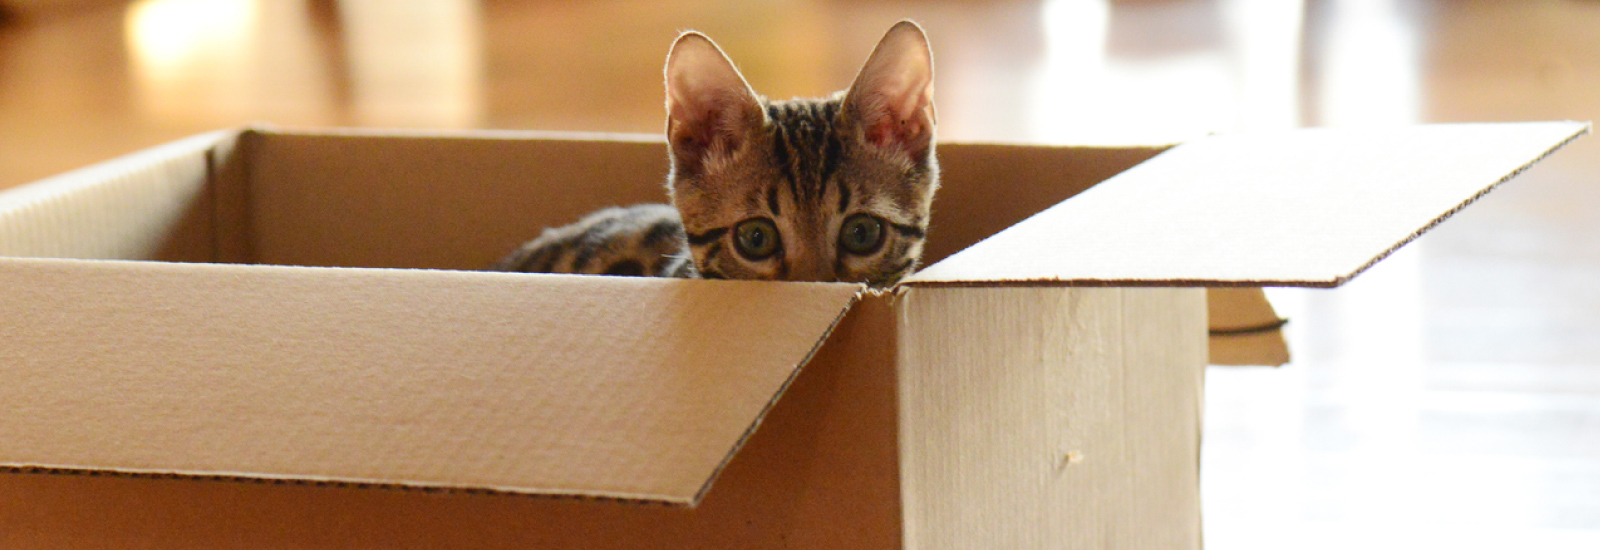 Tips For Moving With Cats